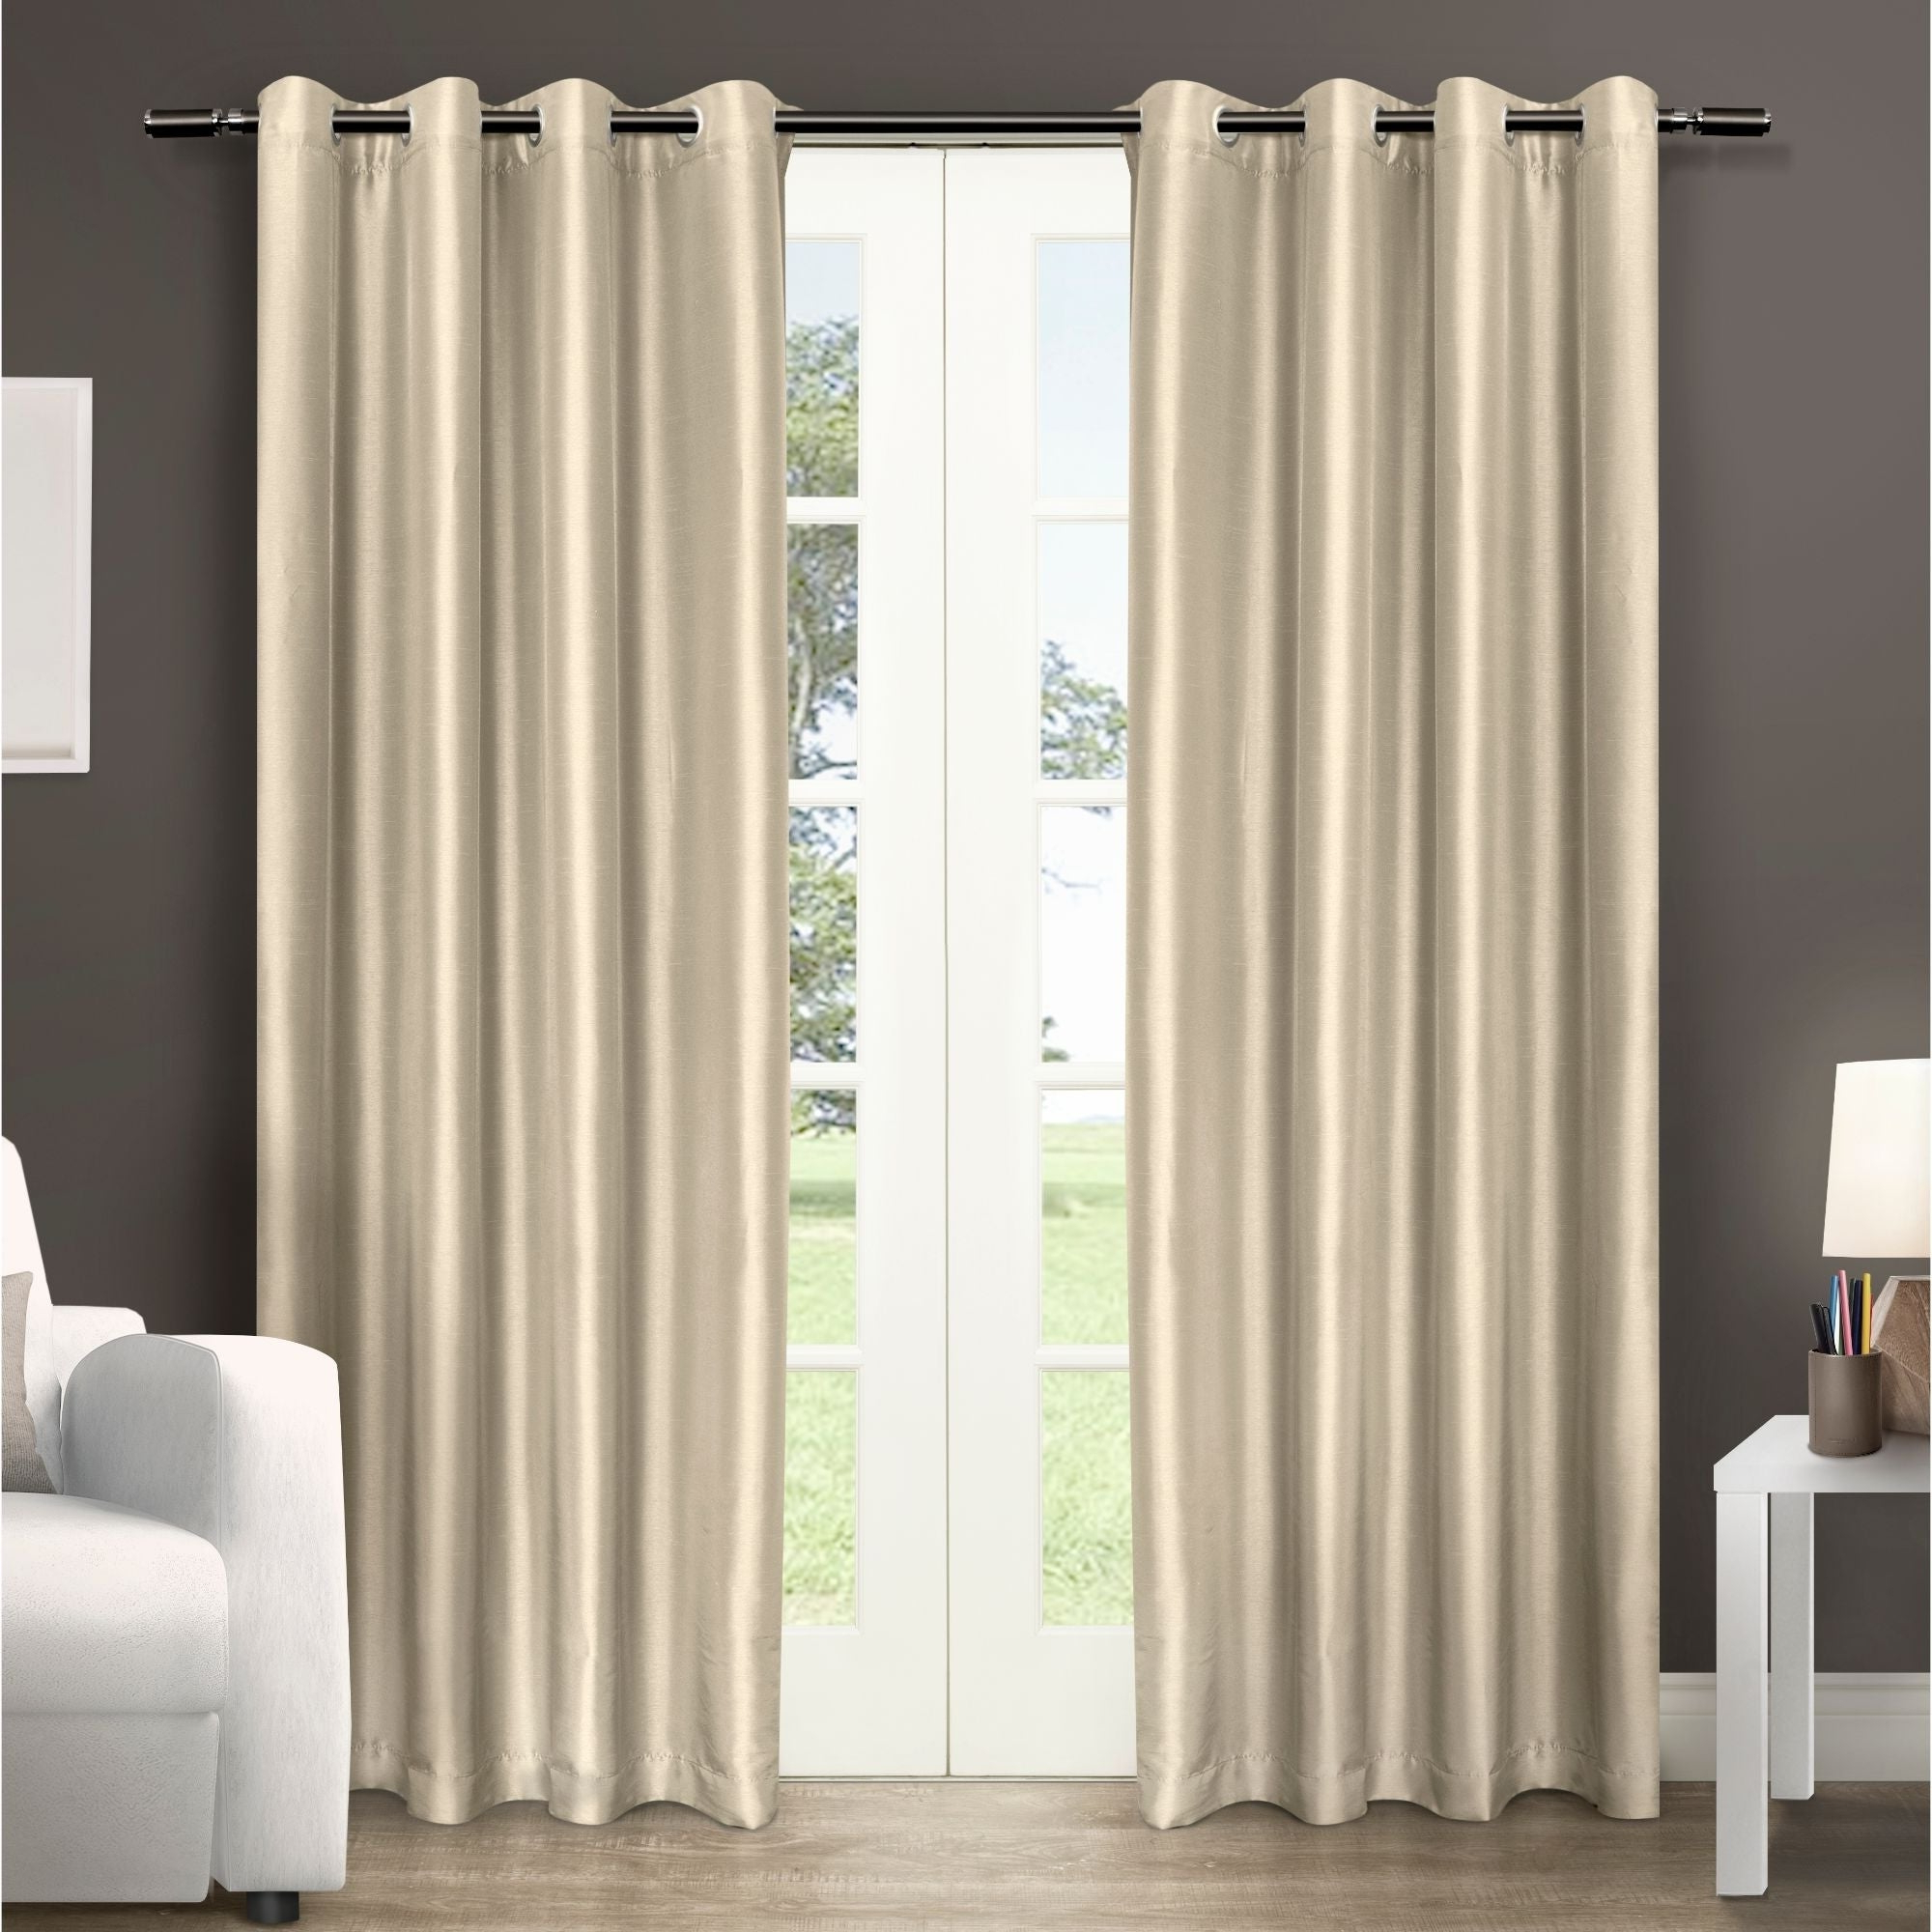 Copper Grove Fulgence Faux Silk Grommet Top Panel Curtains – N/ A Within Most Current Copper Grove Fulgence Faux Silk Grommet Top Panel Curtains (View 4 of 20)